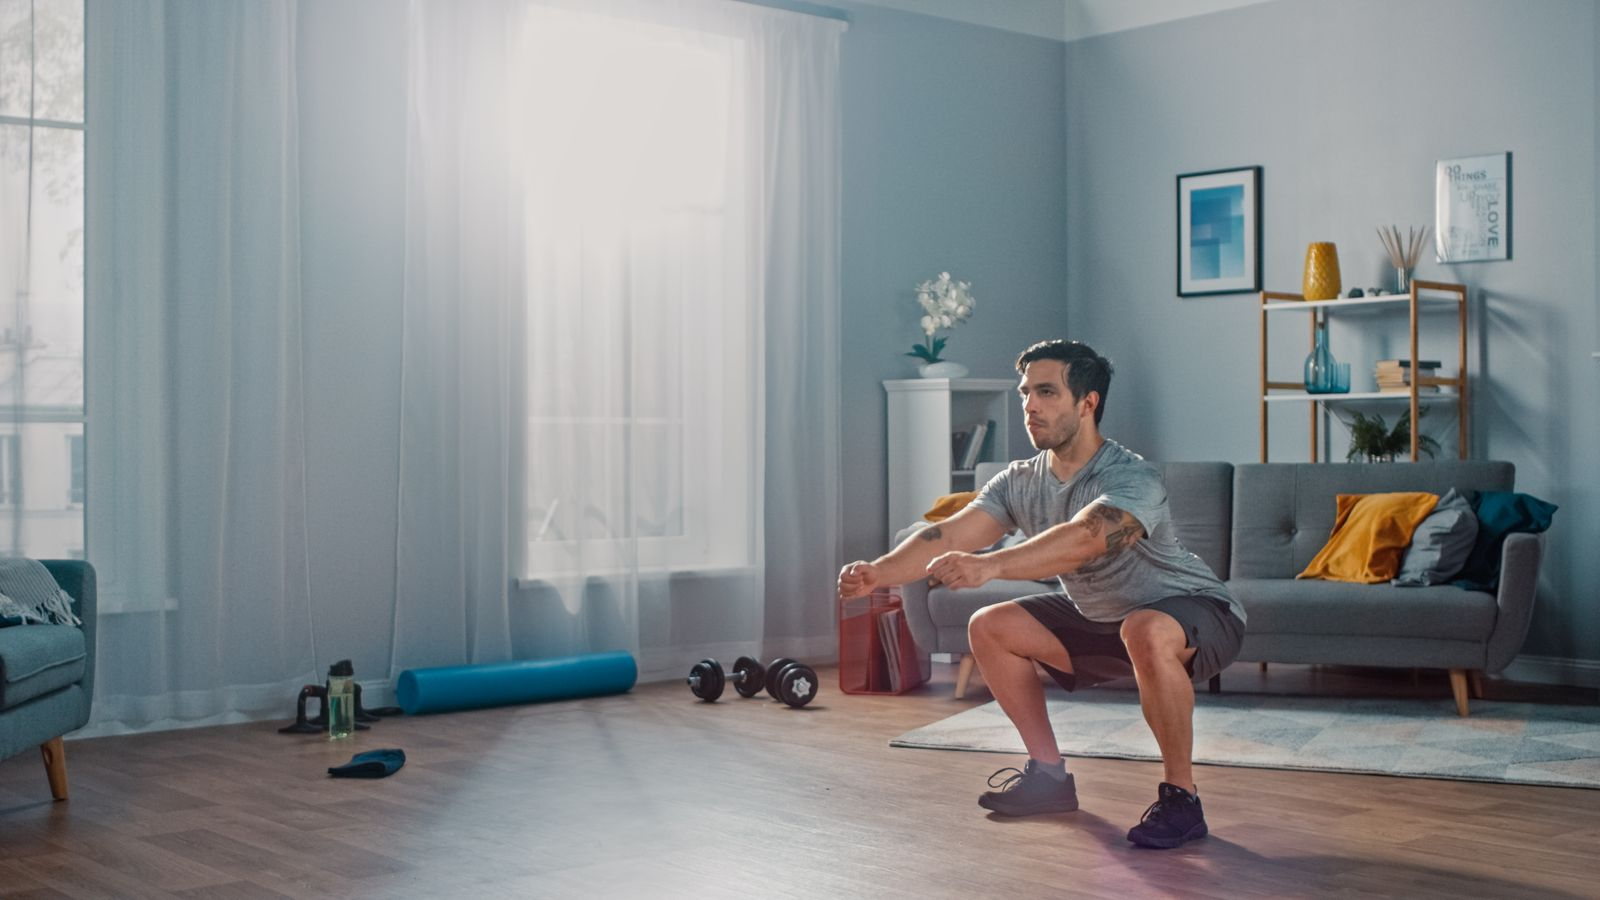 Man working out in living room